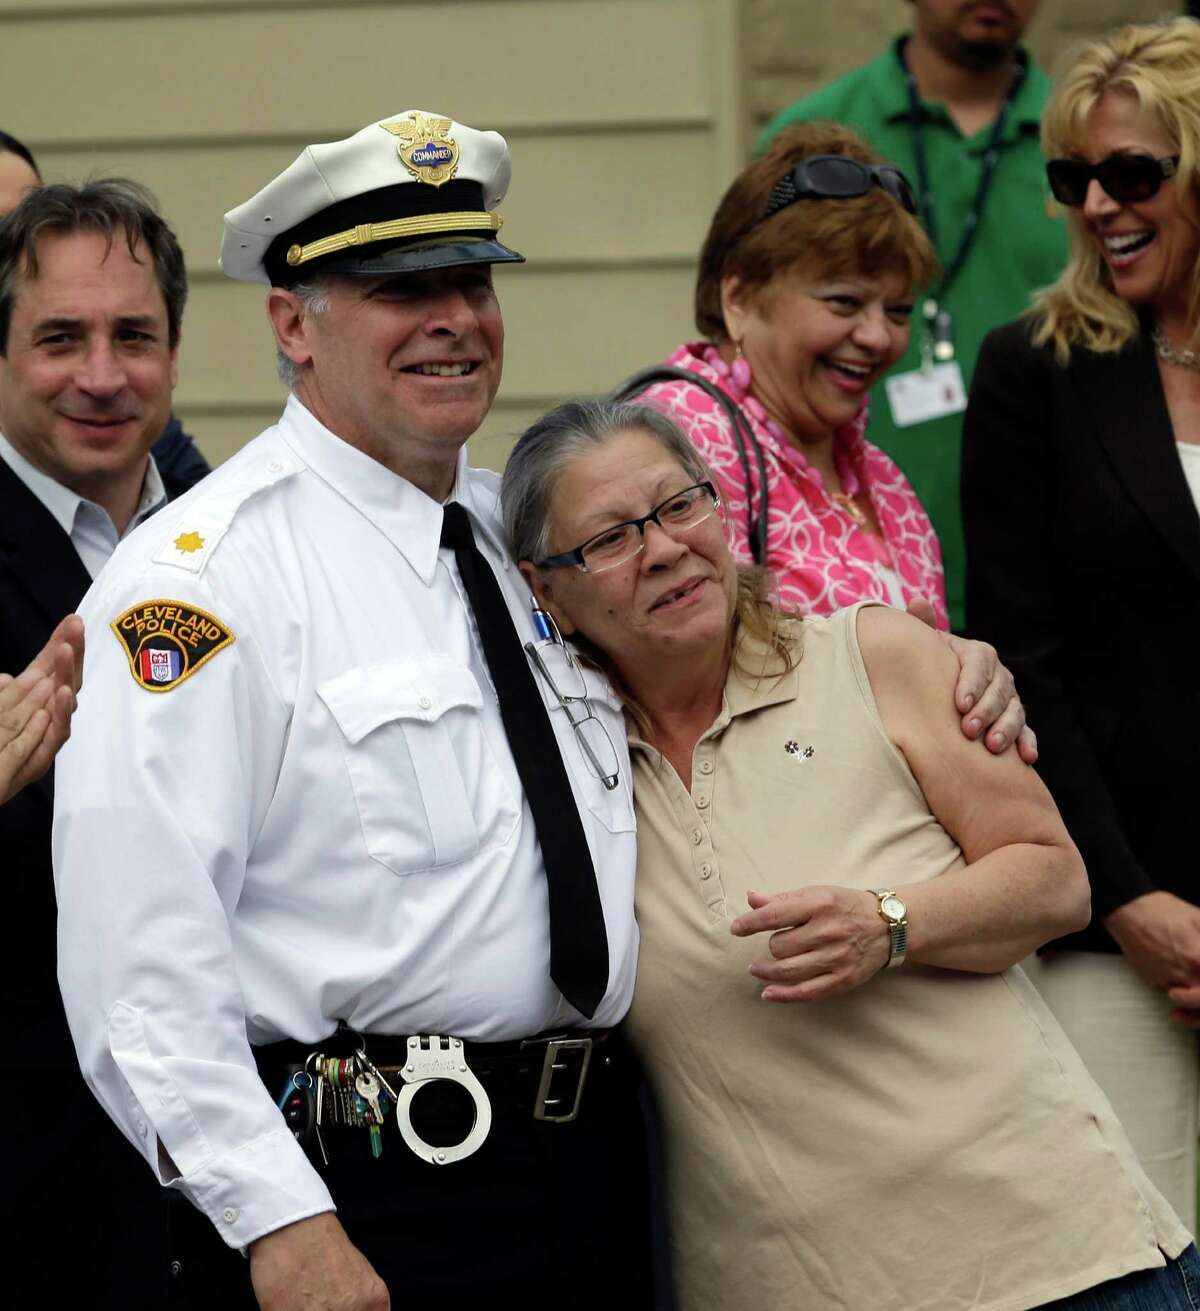 Commander K. Sultzer, left, hugs Nancy Ruiz, mother of Gina DeJesus, Wednesday, May 8, 2013, in Cleveland. DeJesus and two other women held captive for about a decade at a run-down Cleveland house were apparently bound with ropes and chains, police said Wednesday, while charges were expected by the end of the day against the three brothers under arrest.(AP Photo/Tony Dejak)